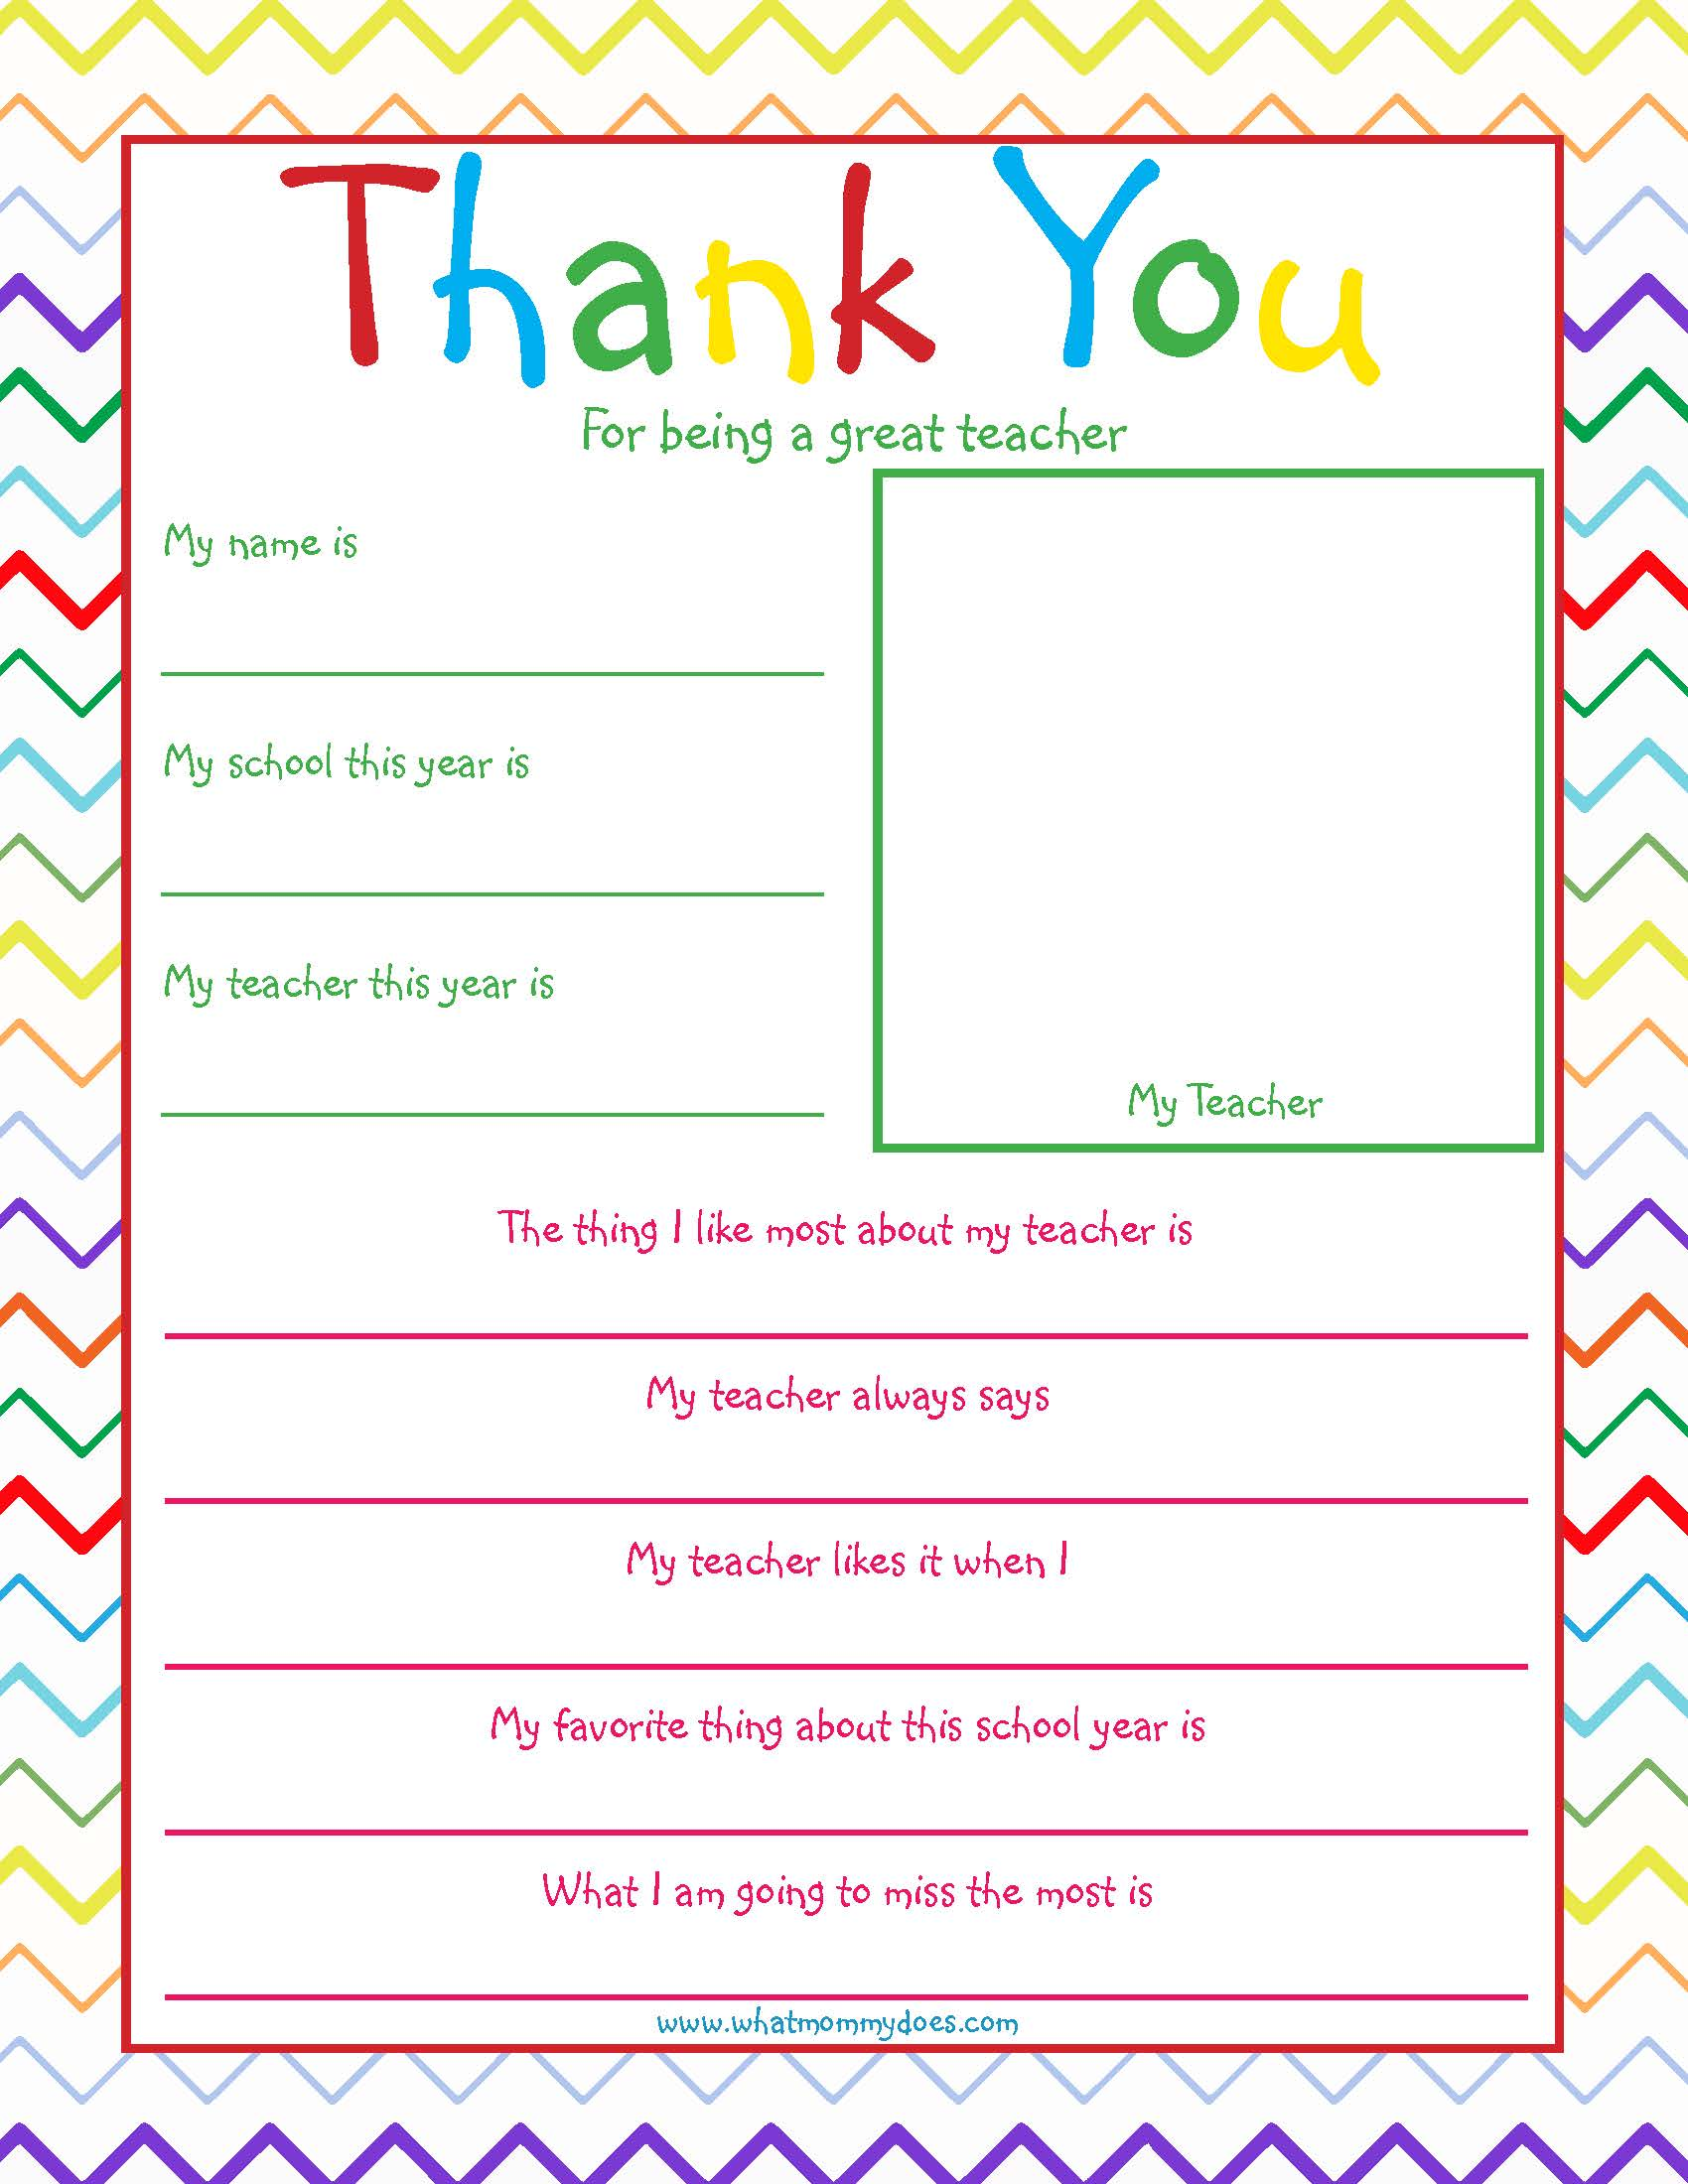 image regarding Thank You Teacher Free Printable titled Totally free Printable Trainer Thank by yourself Observe as a result lovely! - What